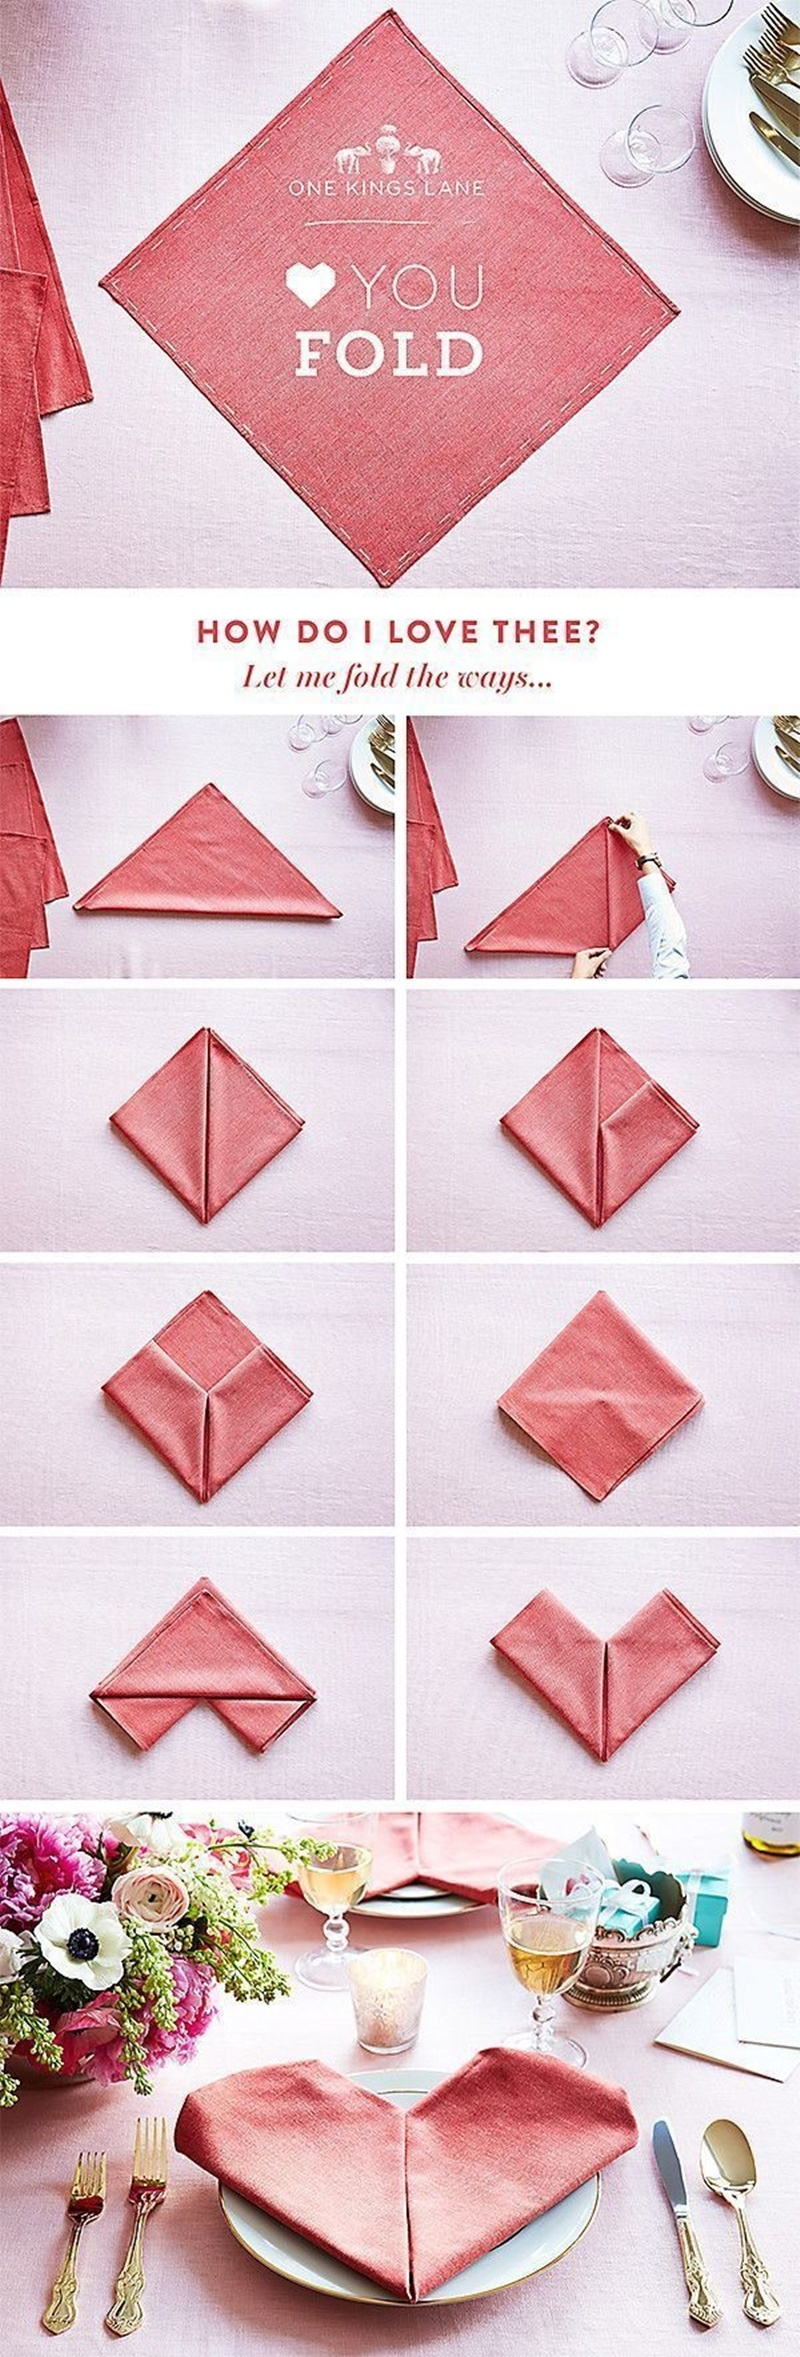 75 Cool Napkin Folding Ideas For Your Next Dinner Party